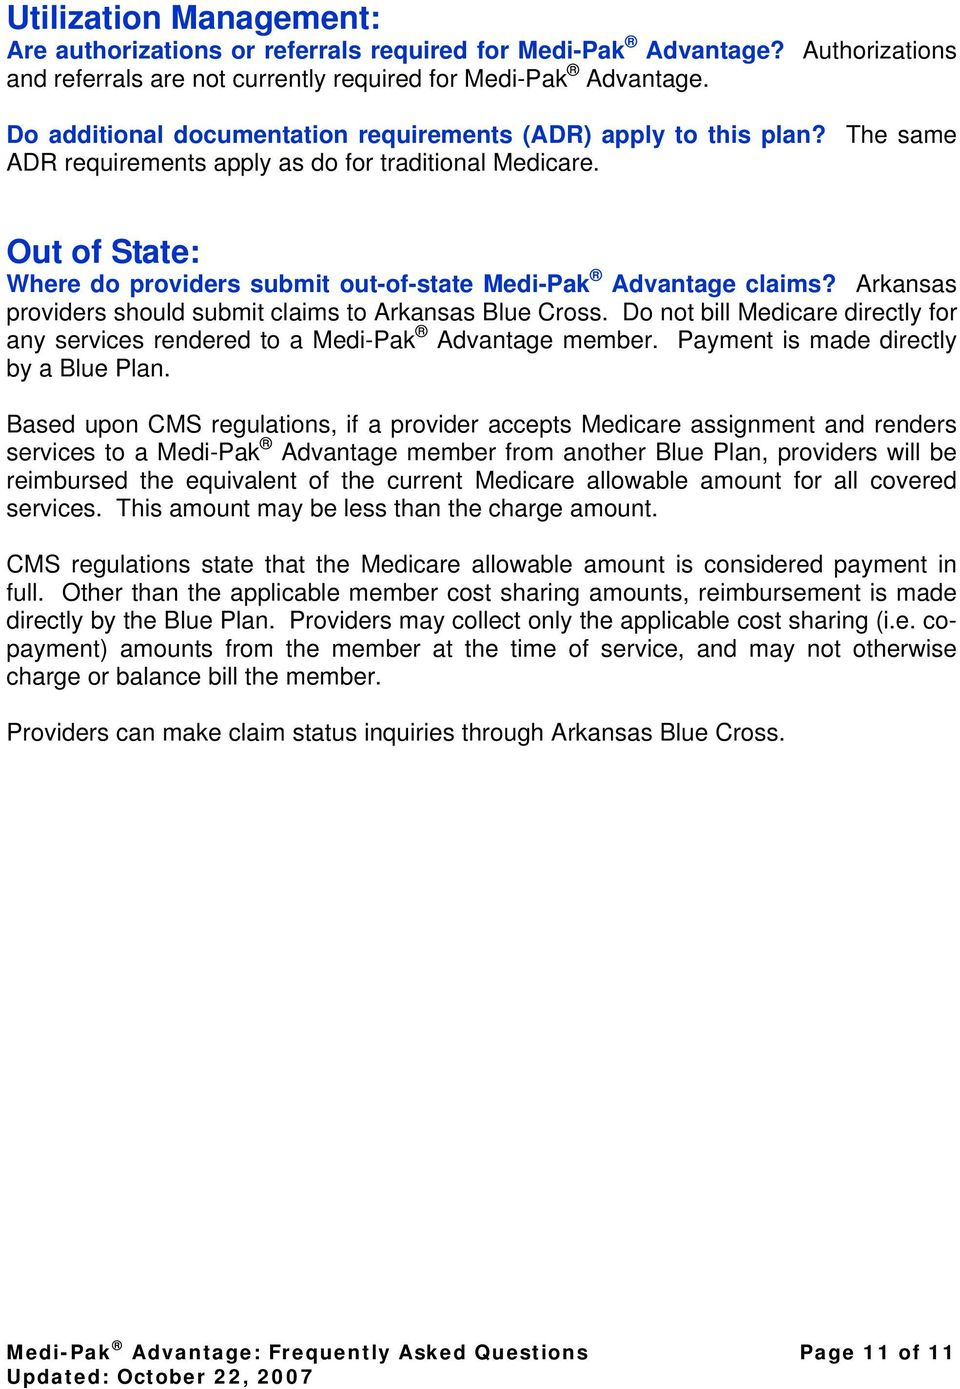 Out of State: Where do providers submit out-of-state Medi-Pak Advantage claims? Arkansas providers should submit claims to Arkansas Blue Cross.